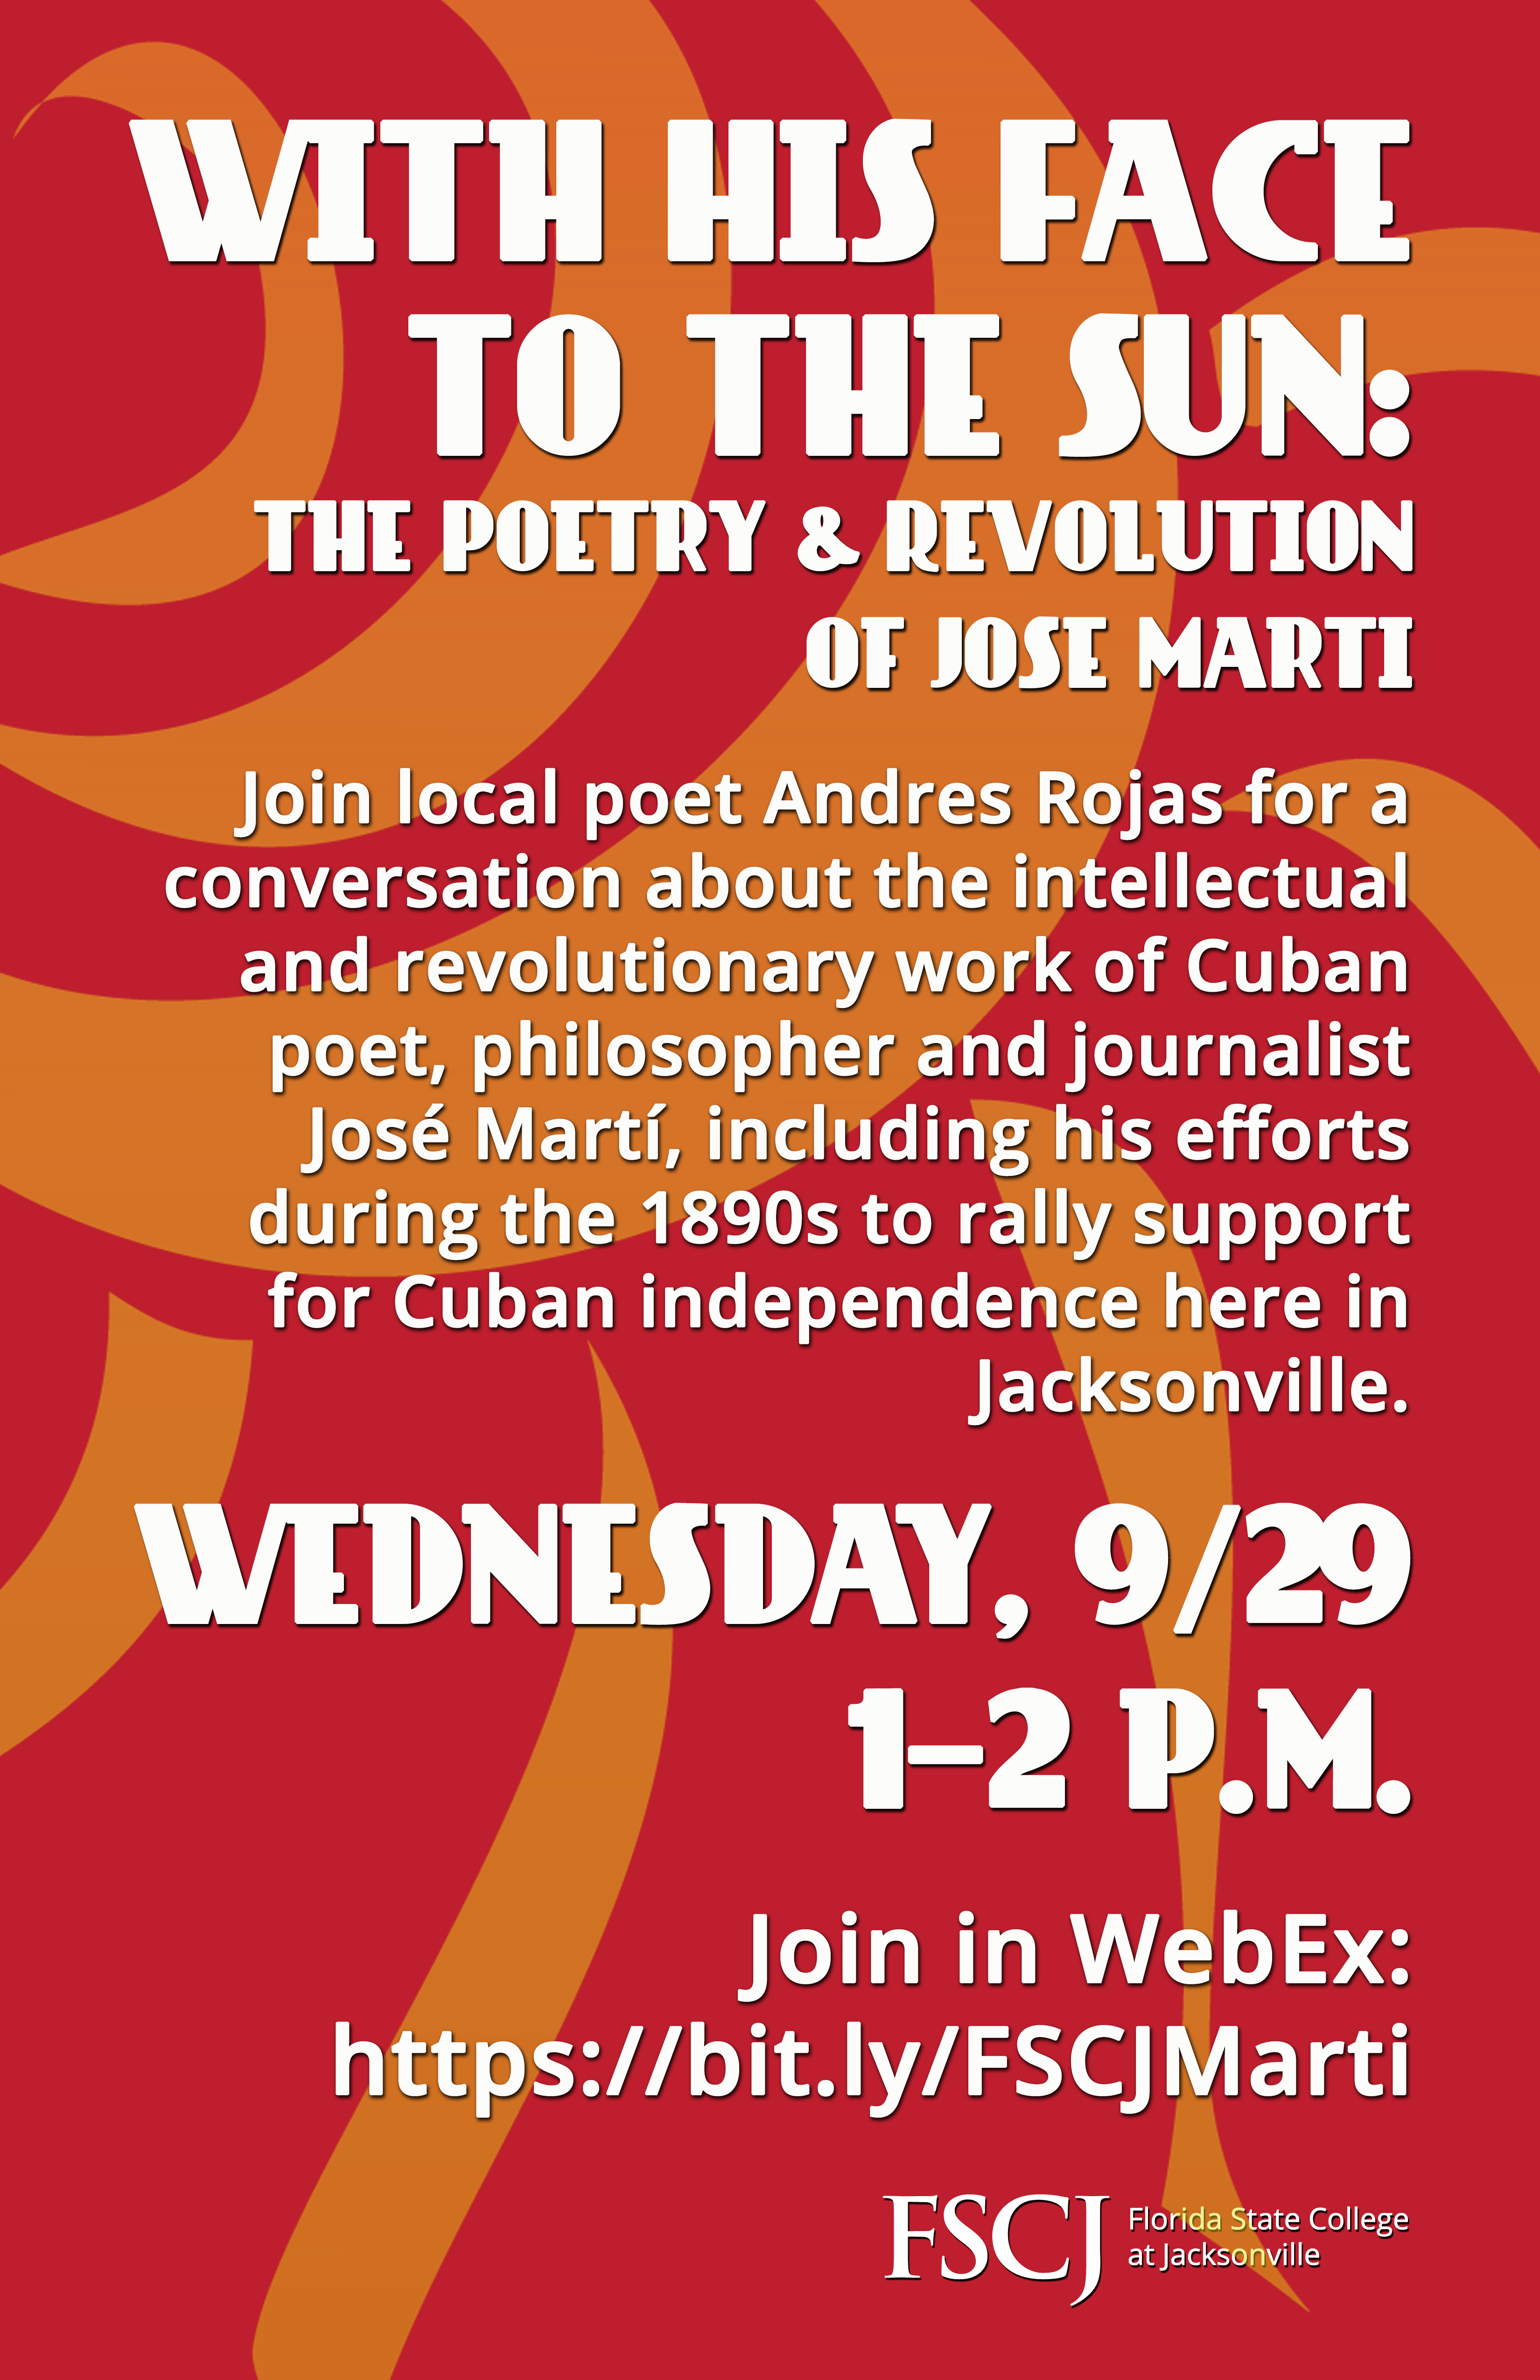 With His Face to the Sun: The Poetry & Revolution of José Martí